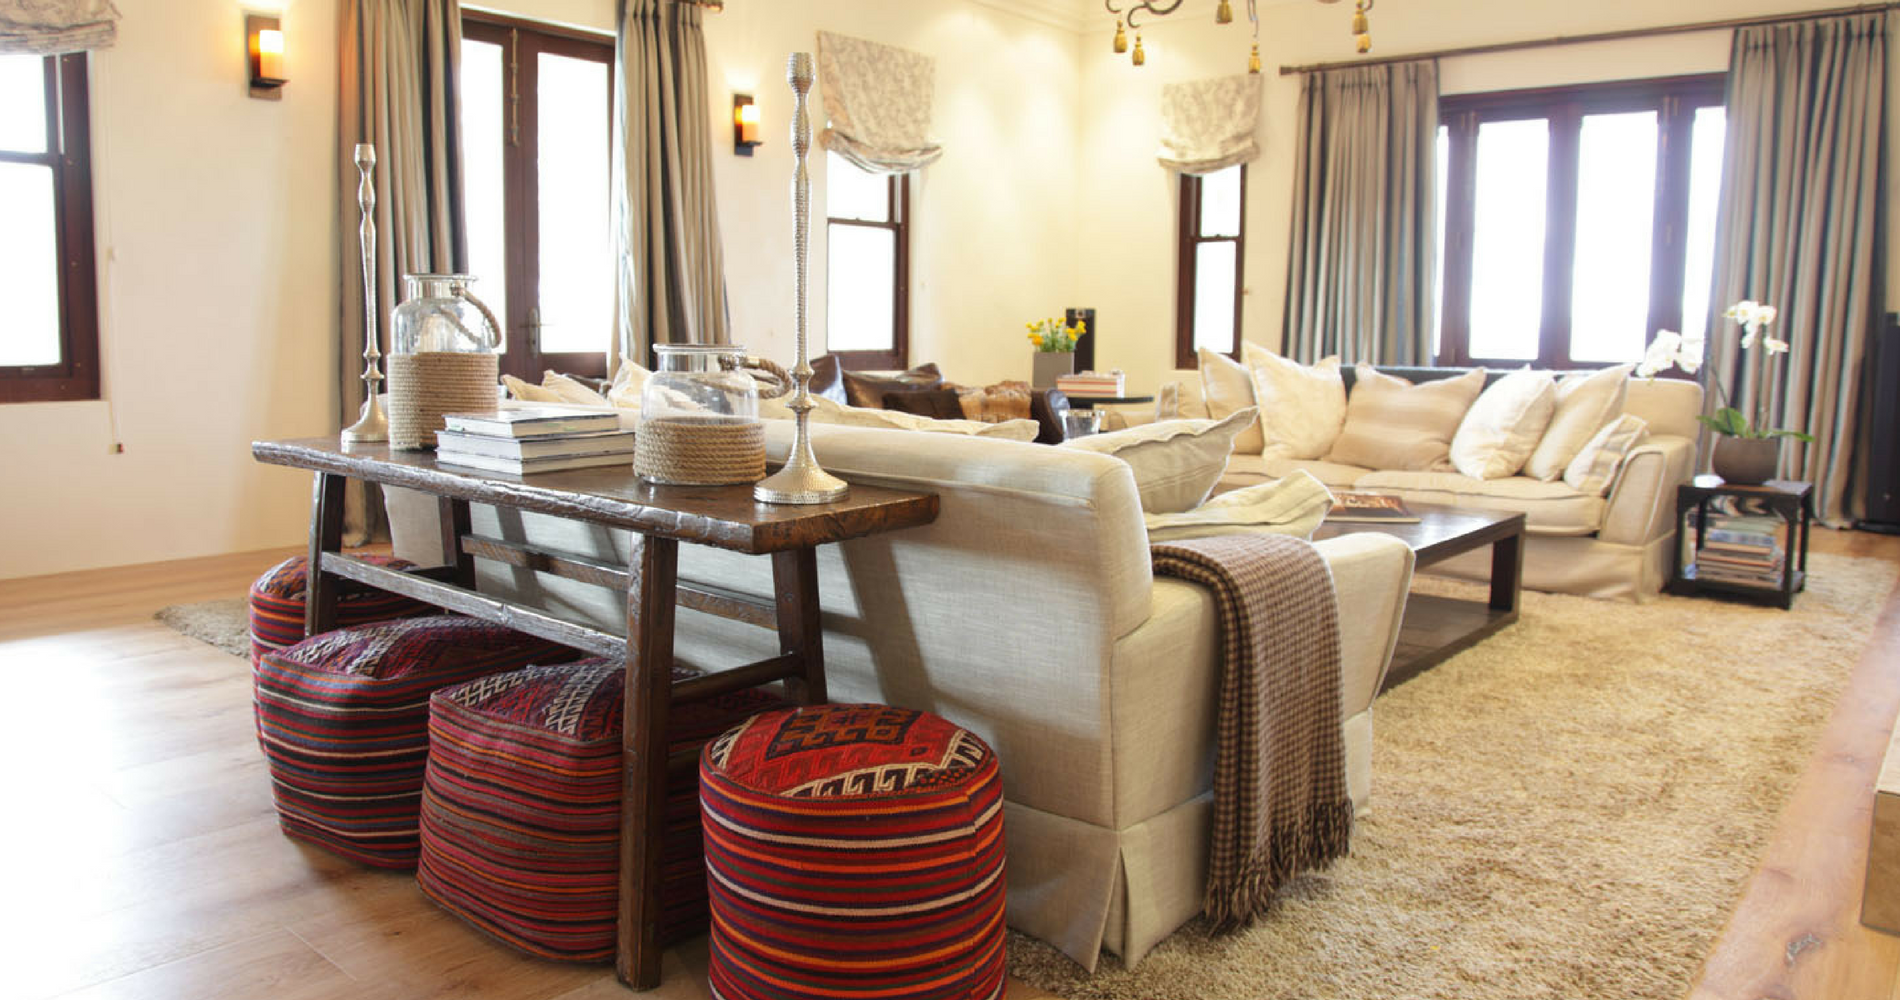 A light-filled open lounge space is made cozy by oversized cushions, woollen throws and unique, brightly coloured ottomans.